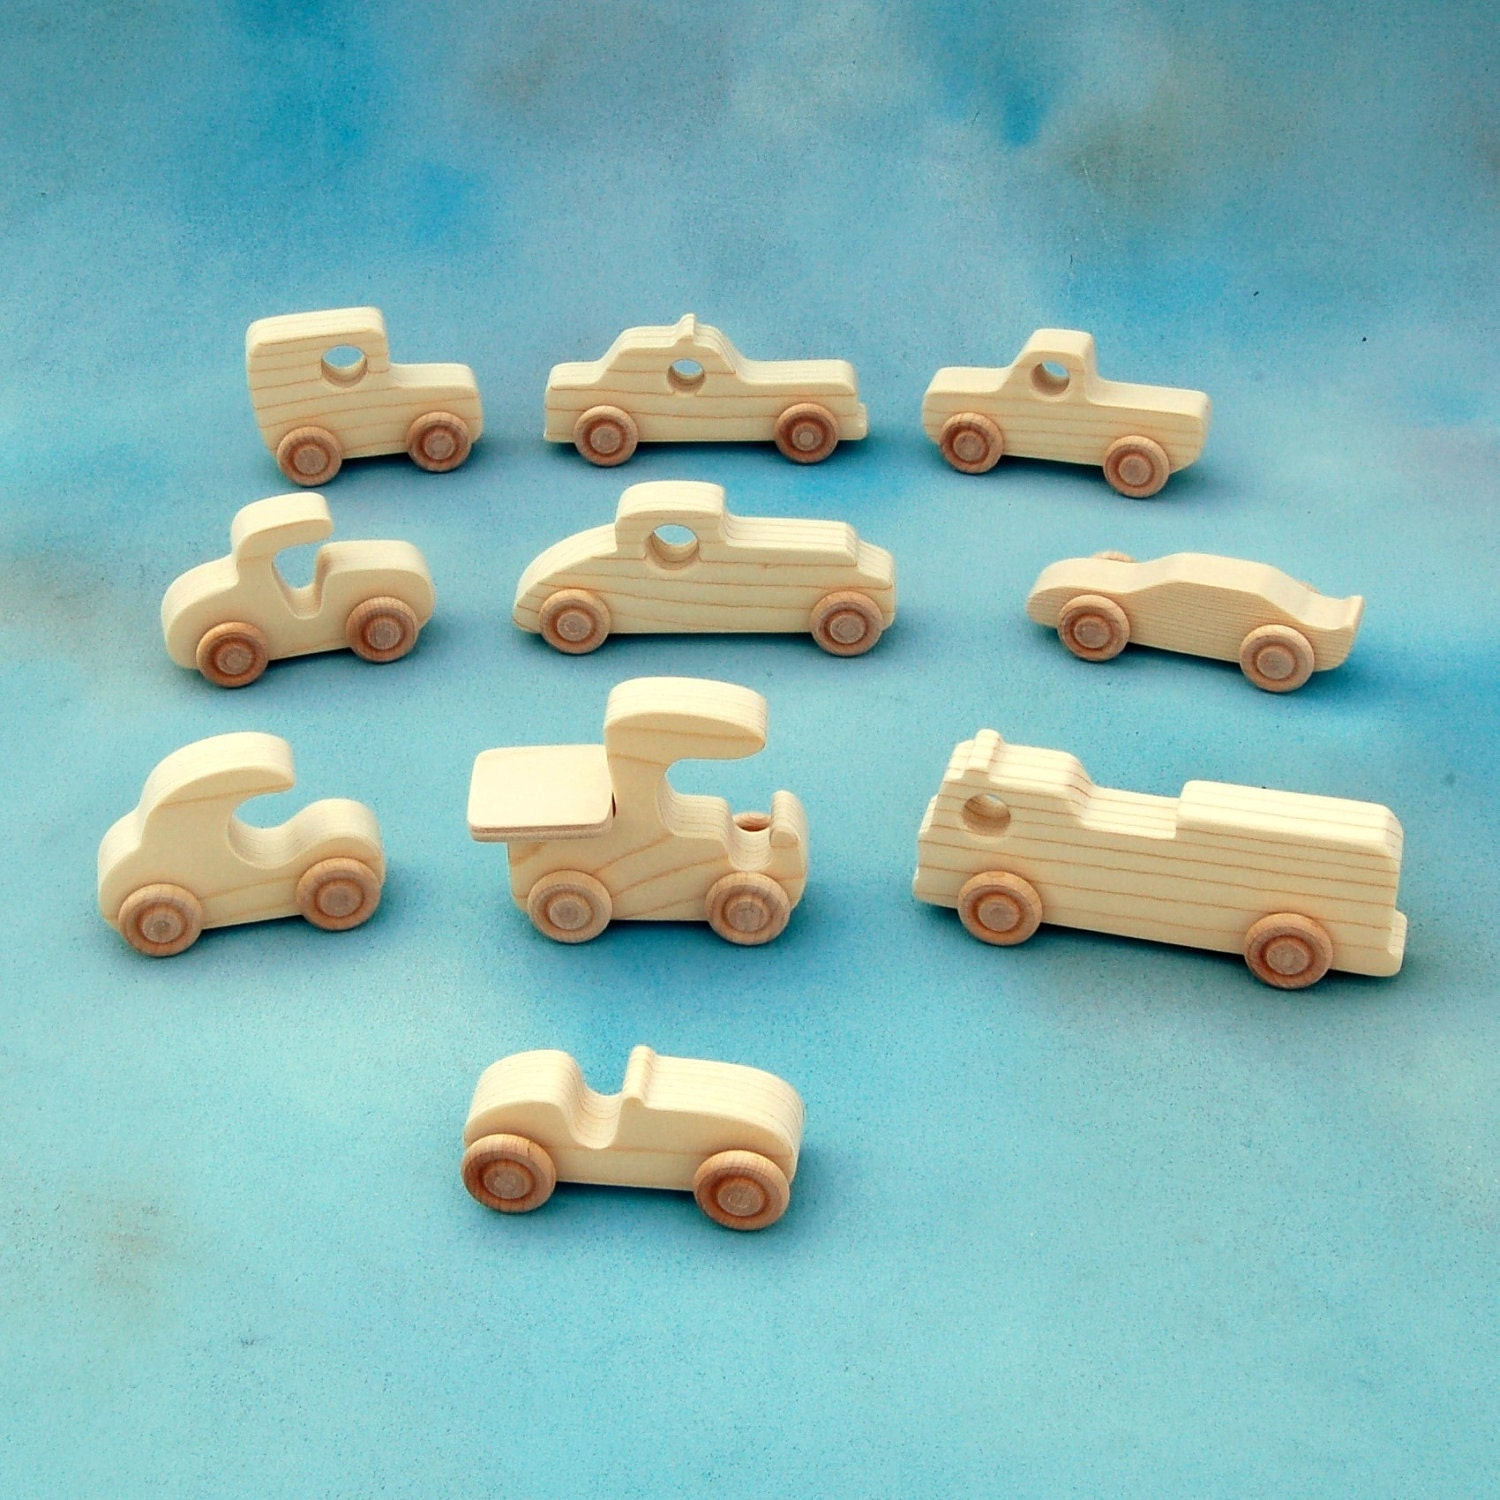 Wood Toy Cars and Trucks - Set of 10 Natural Wooden Toy Vehicles ...